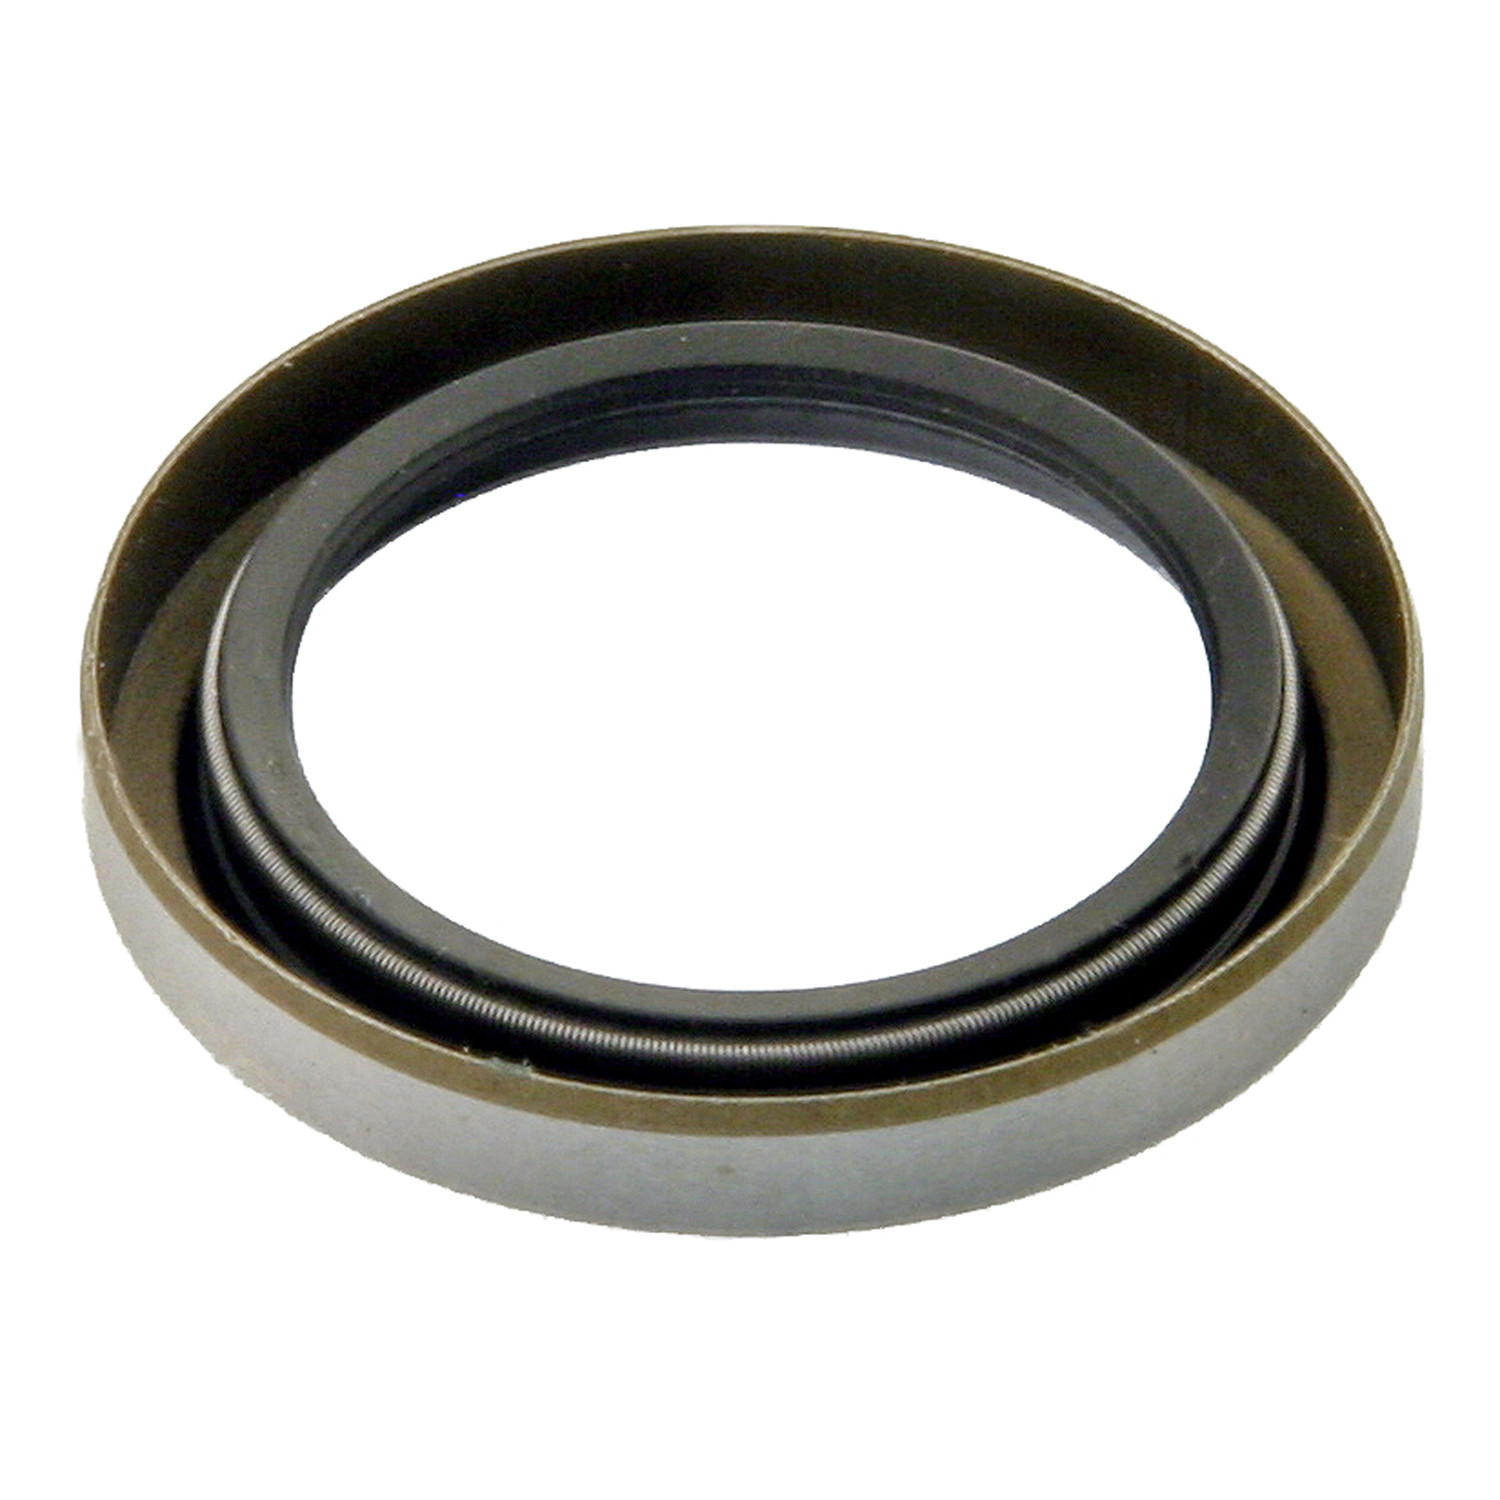 PRECISION AUTOMOTIVE INDUSTRIES - Manual Trans Input Shaft Seal - PAU 7412S